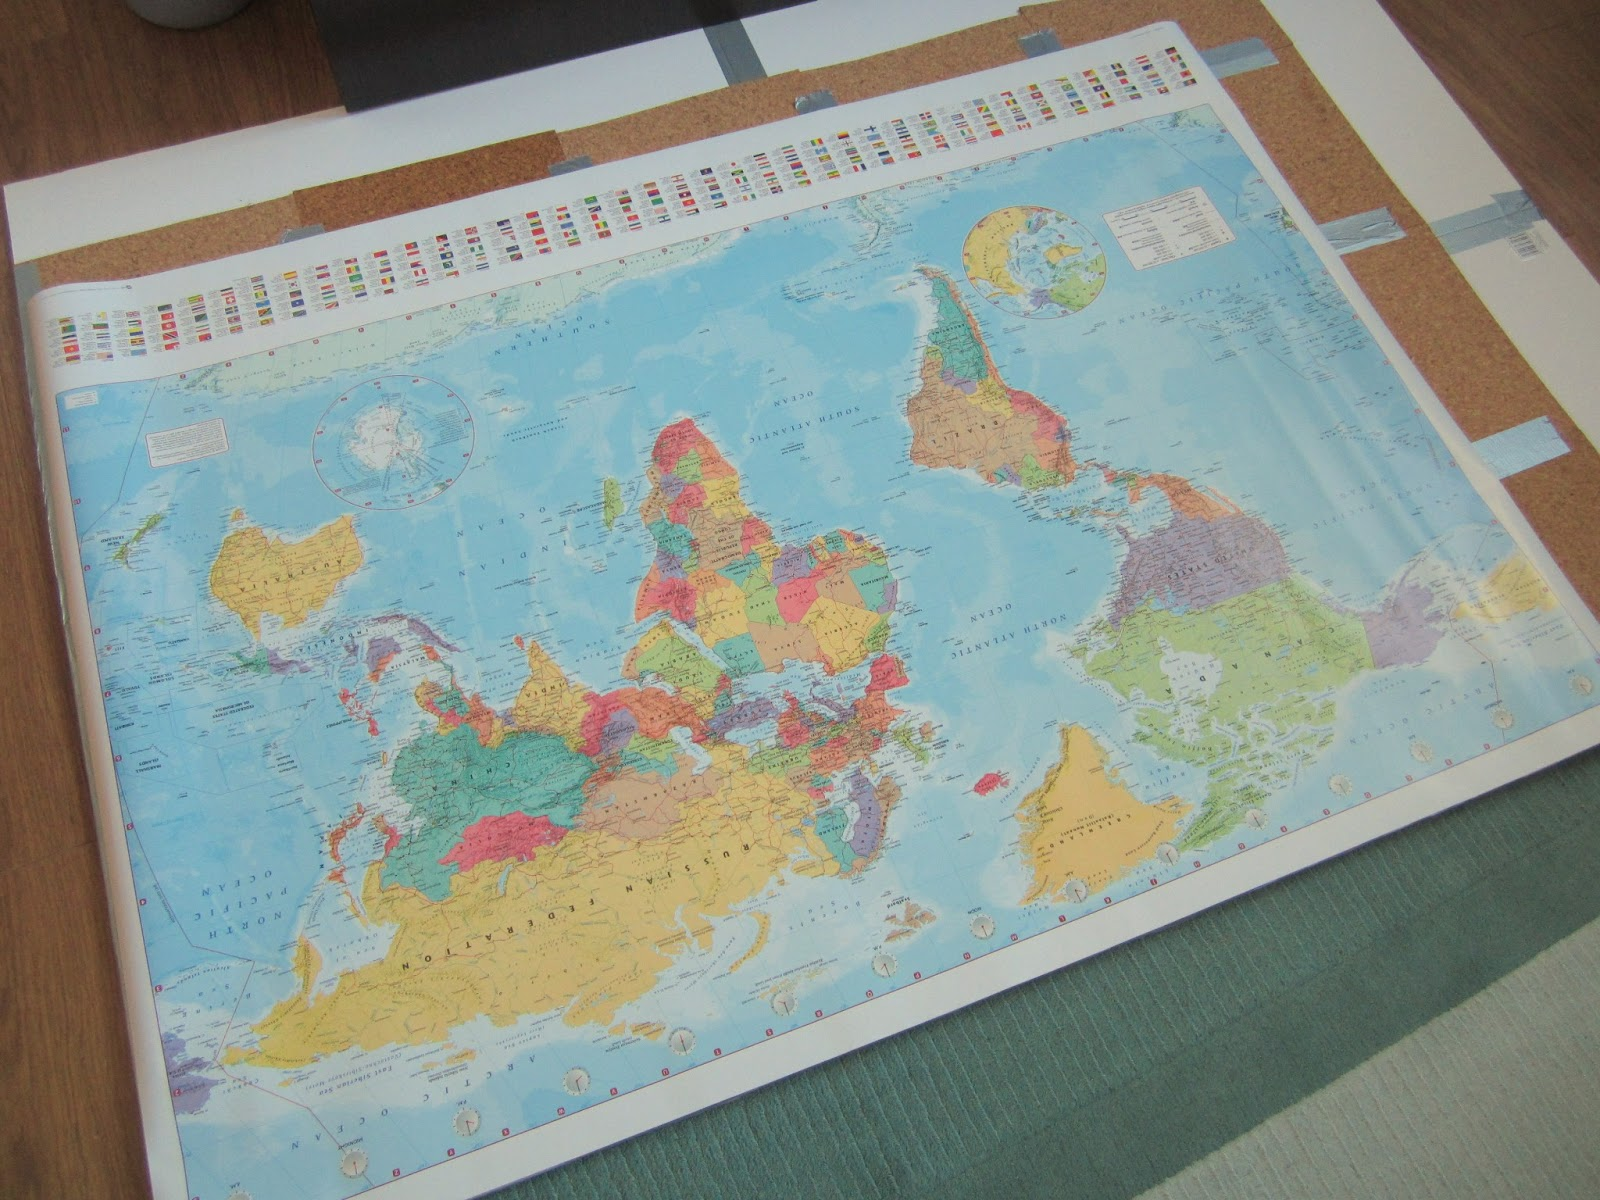 Giant world map pinboard crafty weekend craft projects for the giant world map pinboard crafty weekend craft projects for the weekend gumiabroncs Choice Image